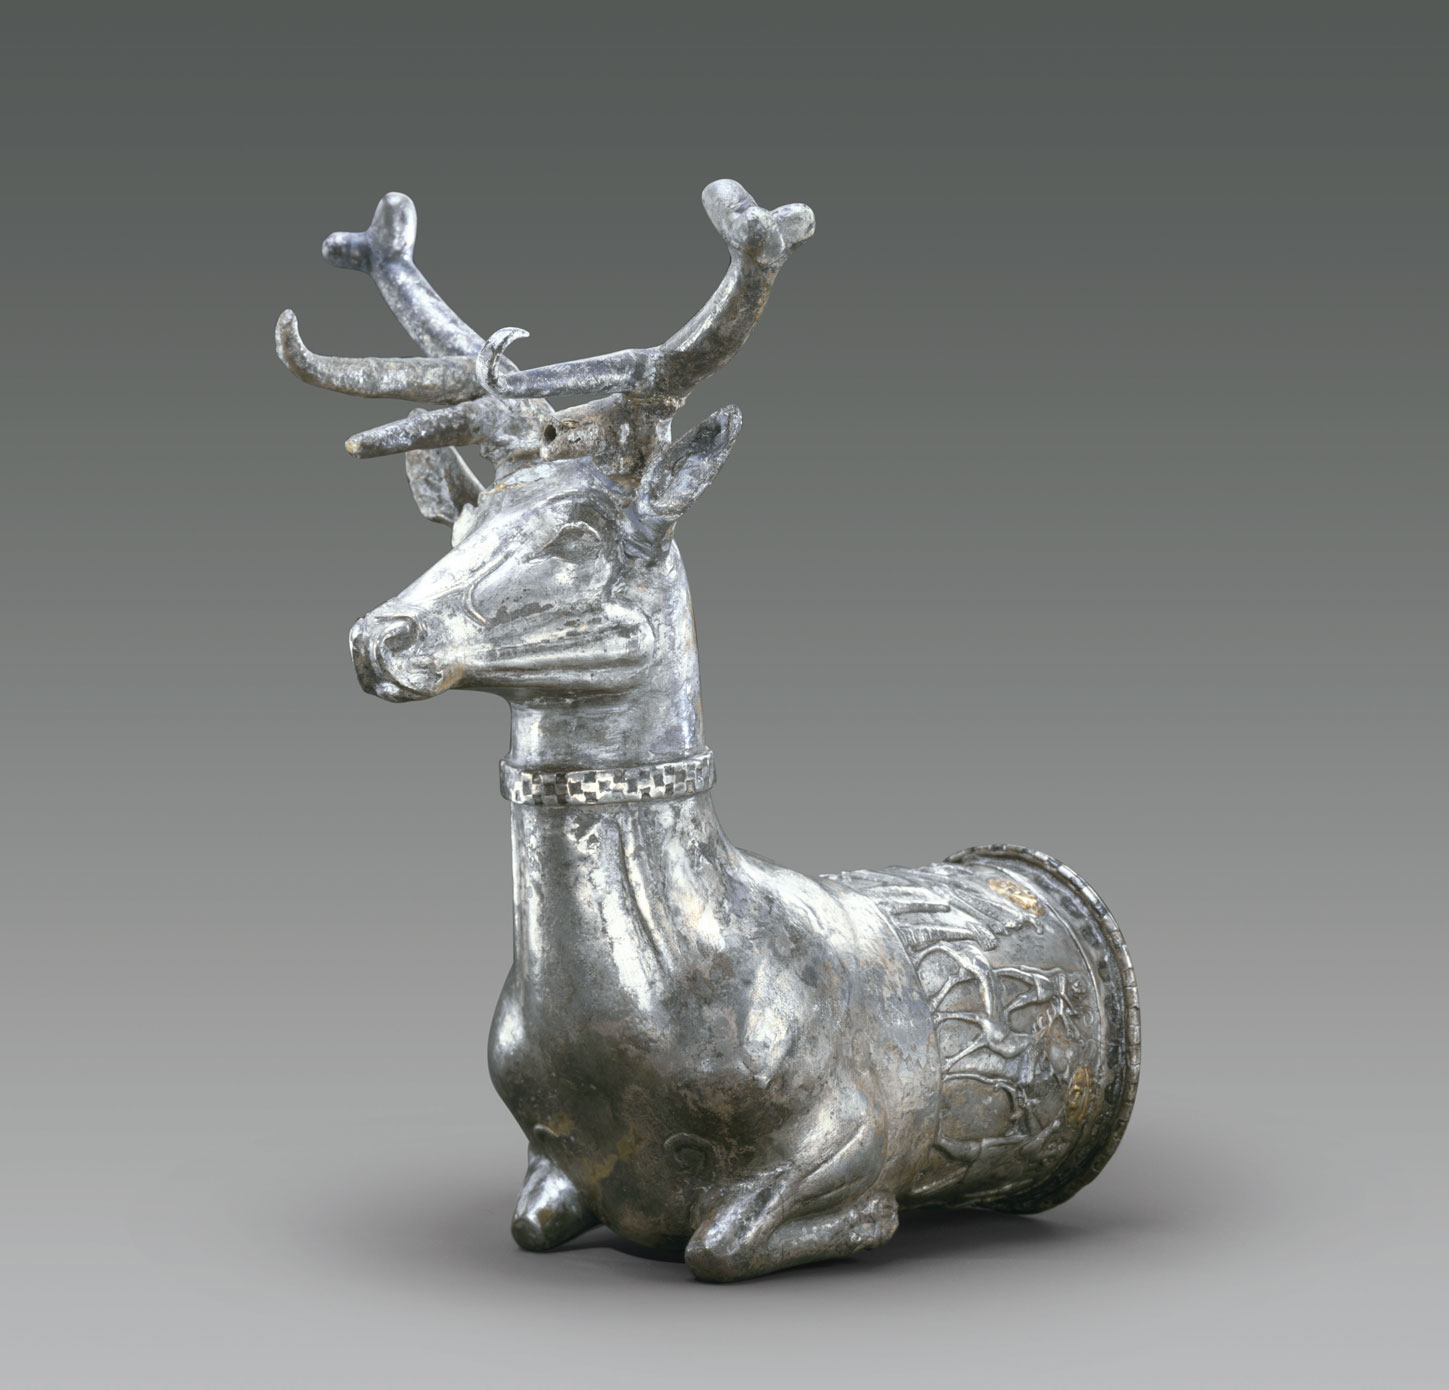 The silver vessel in the form of a stag (p.139, fig.9) is stunning, in part because it's so old: it dates as early as the 14th century BC. From Art =